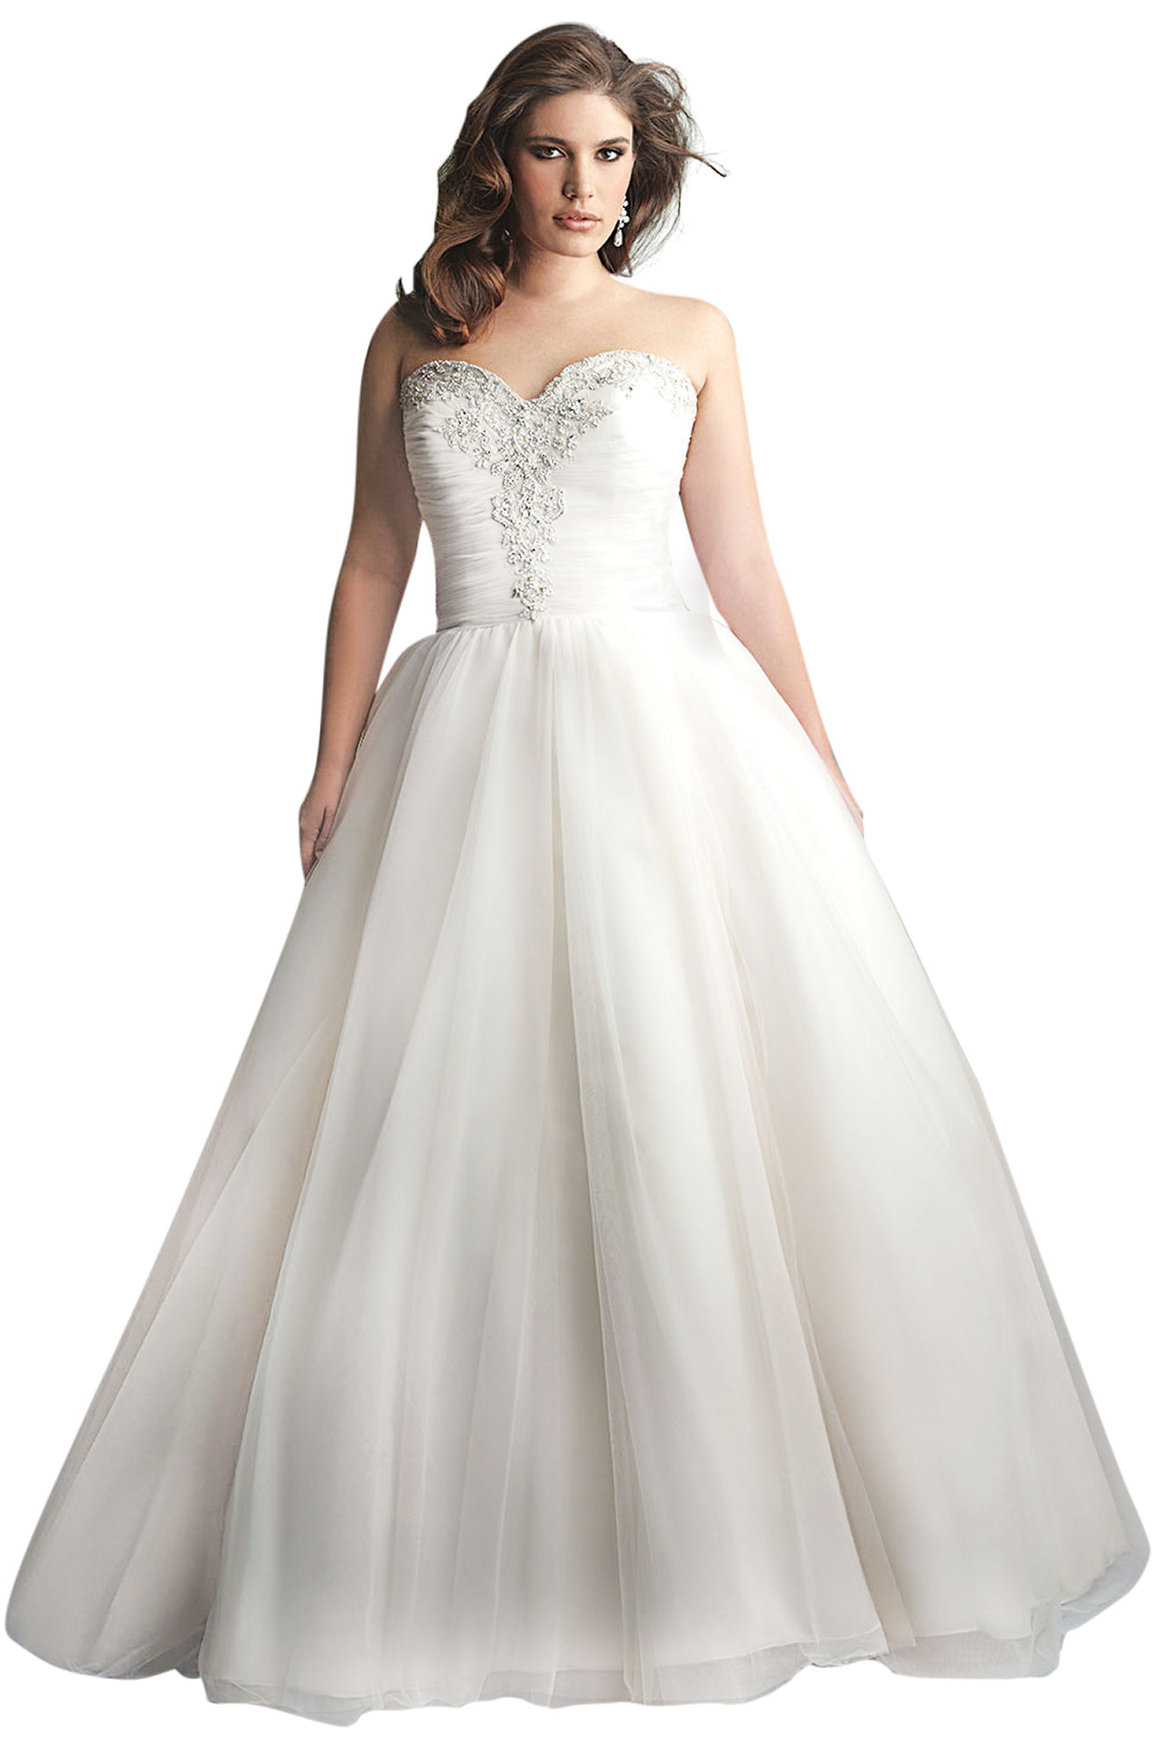 Best wedding dress for your body type page 5 bridalguide for Best website for wedding dresses